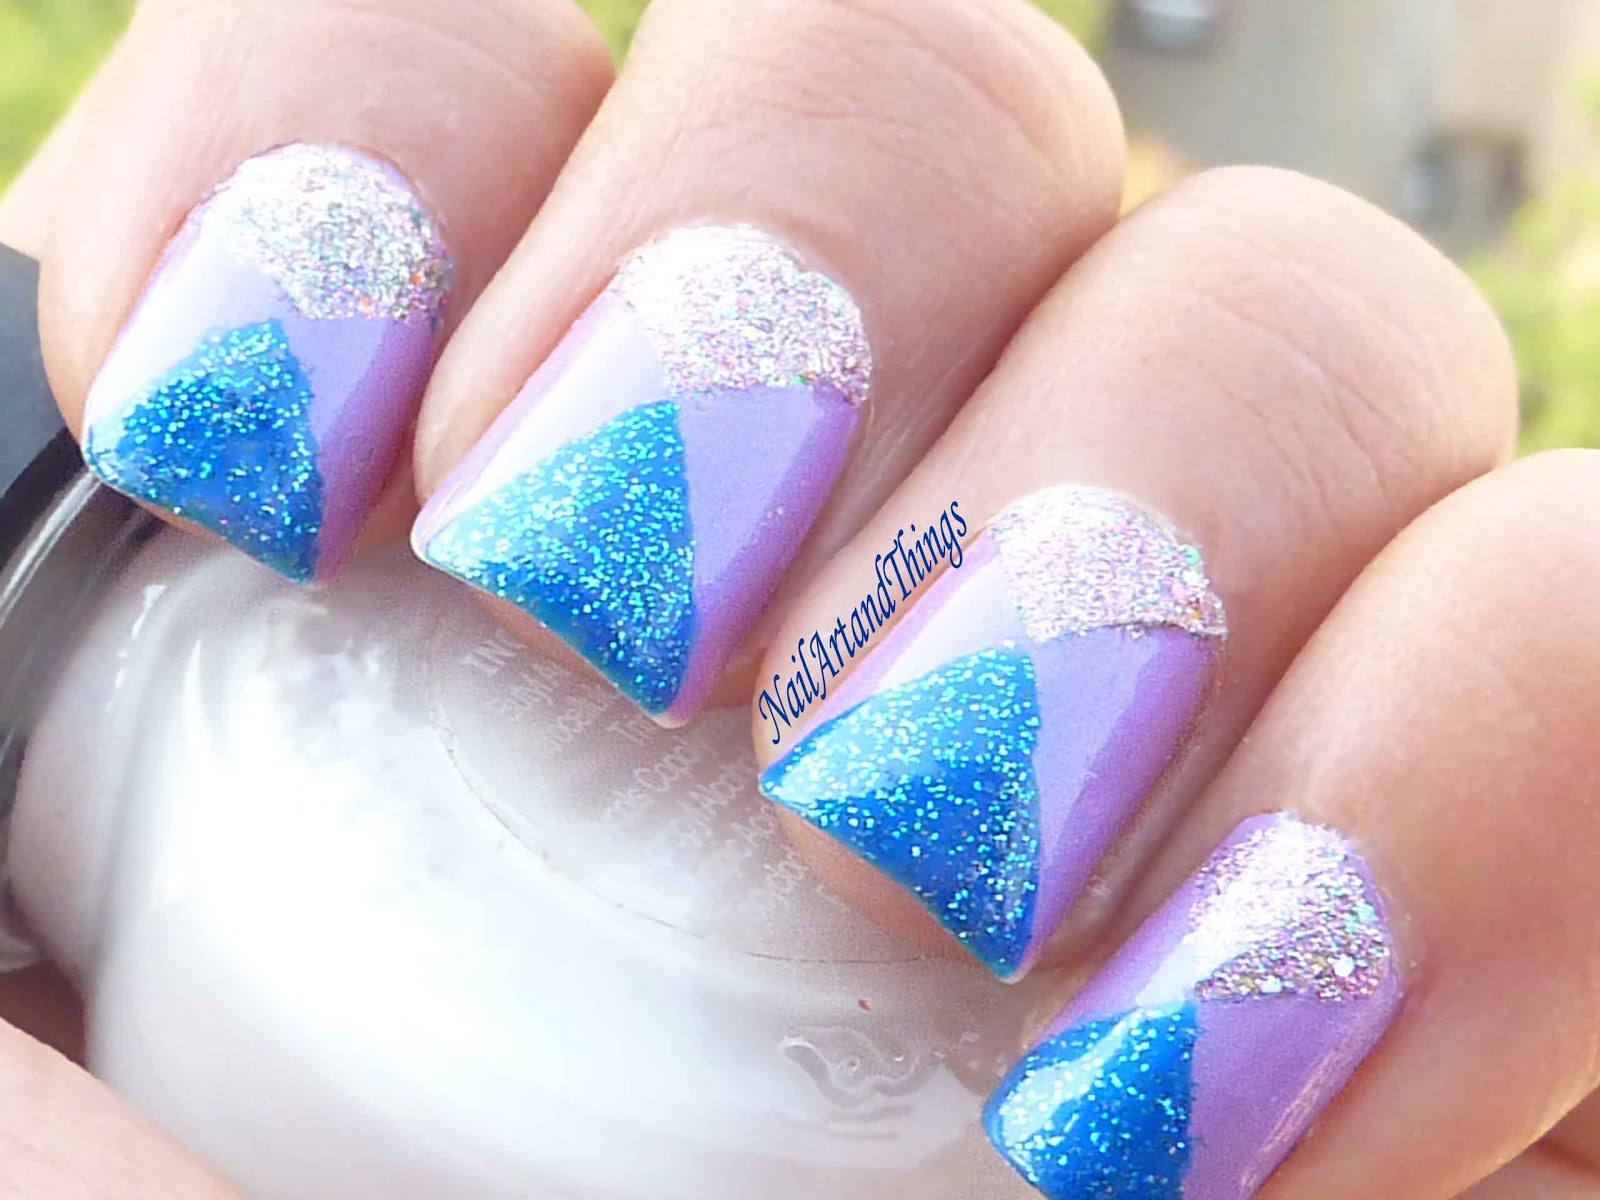 Nailart and things mirrored triangles tape nail art mirrored triangles tape nail art prinsesfo Choice Image